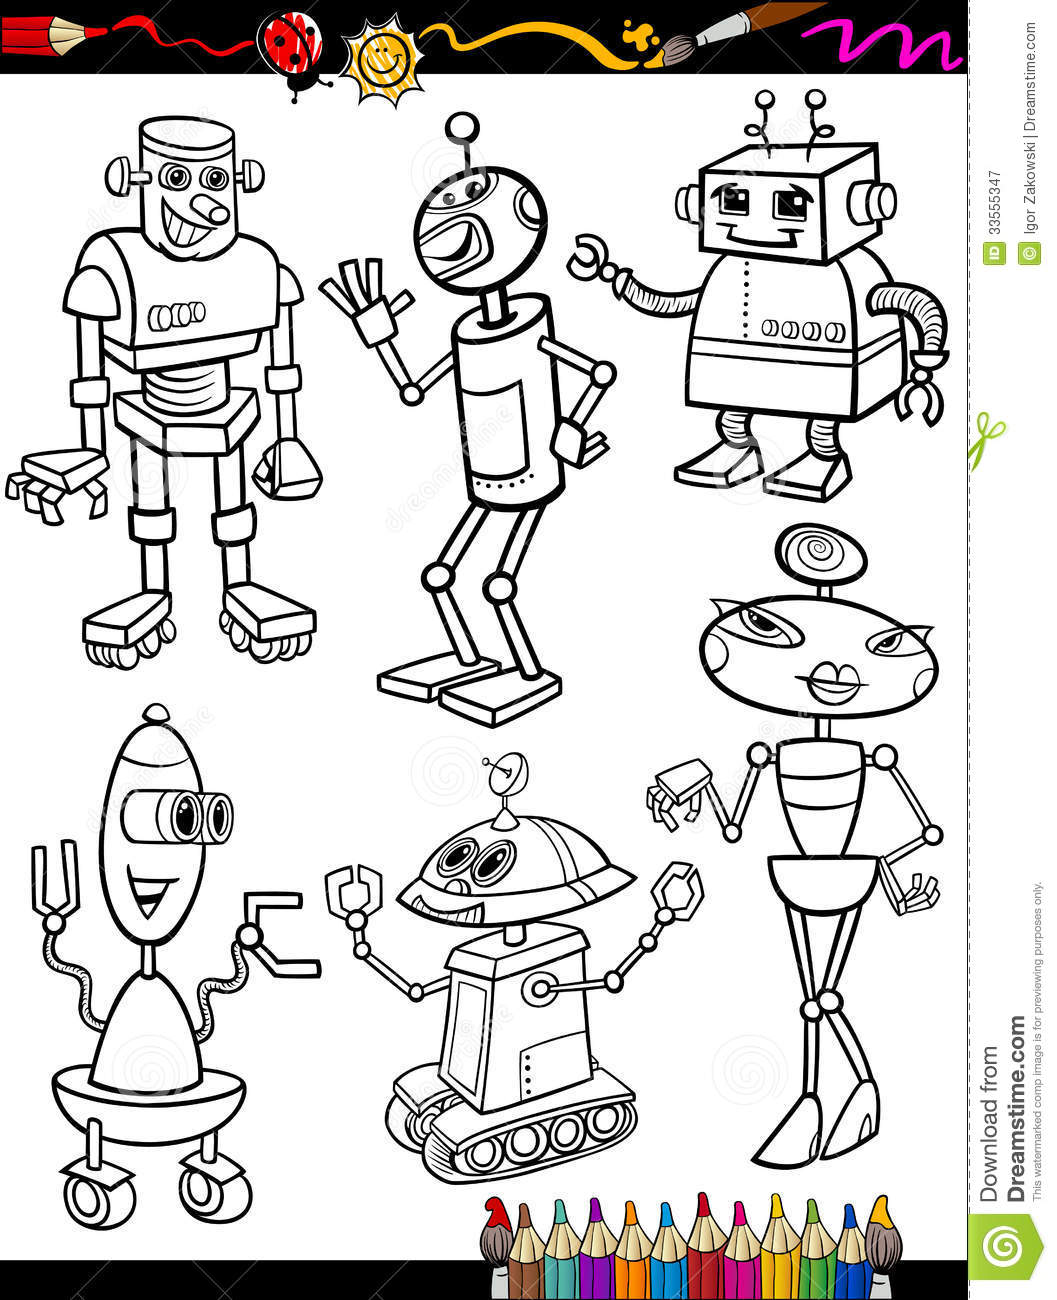 robots cartoon set for coloring book royalty free stock